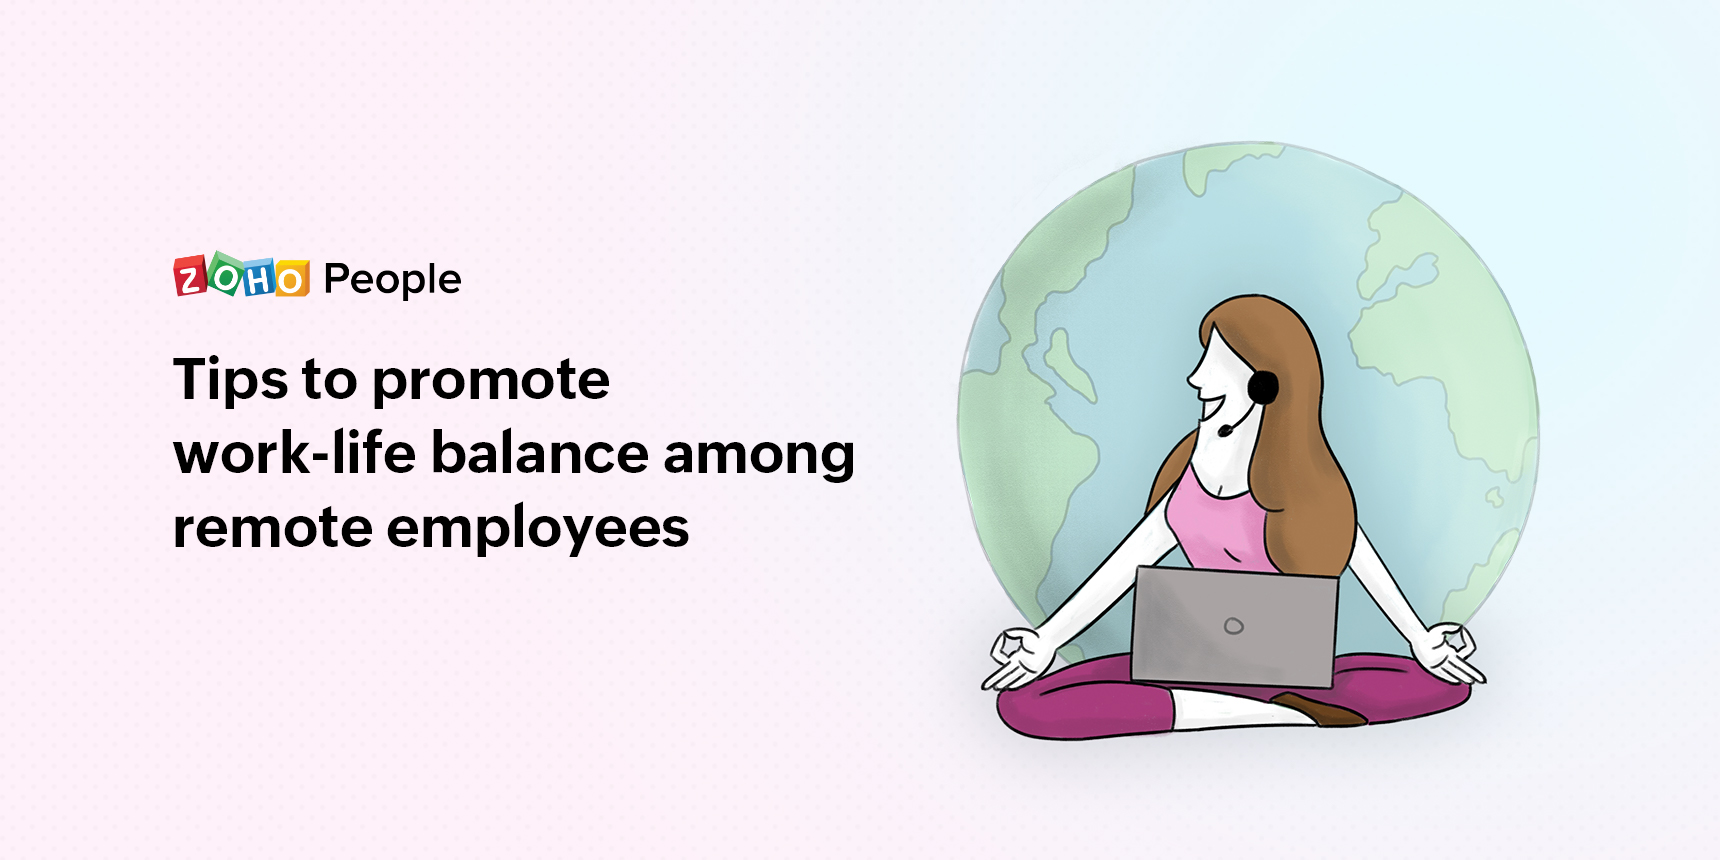 Tips to improve work-life balance for remote employees